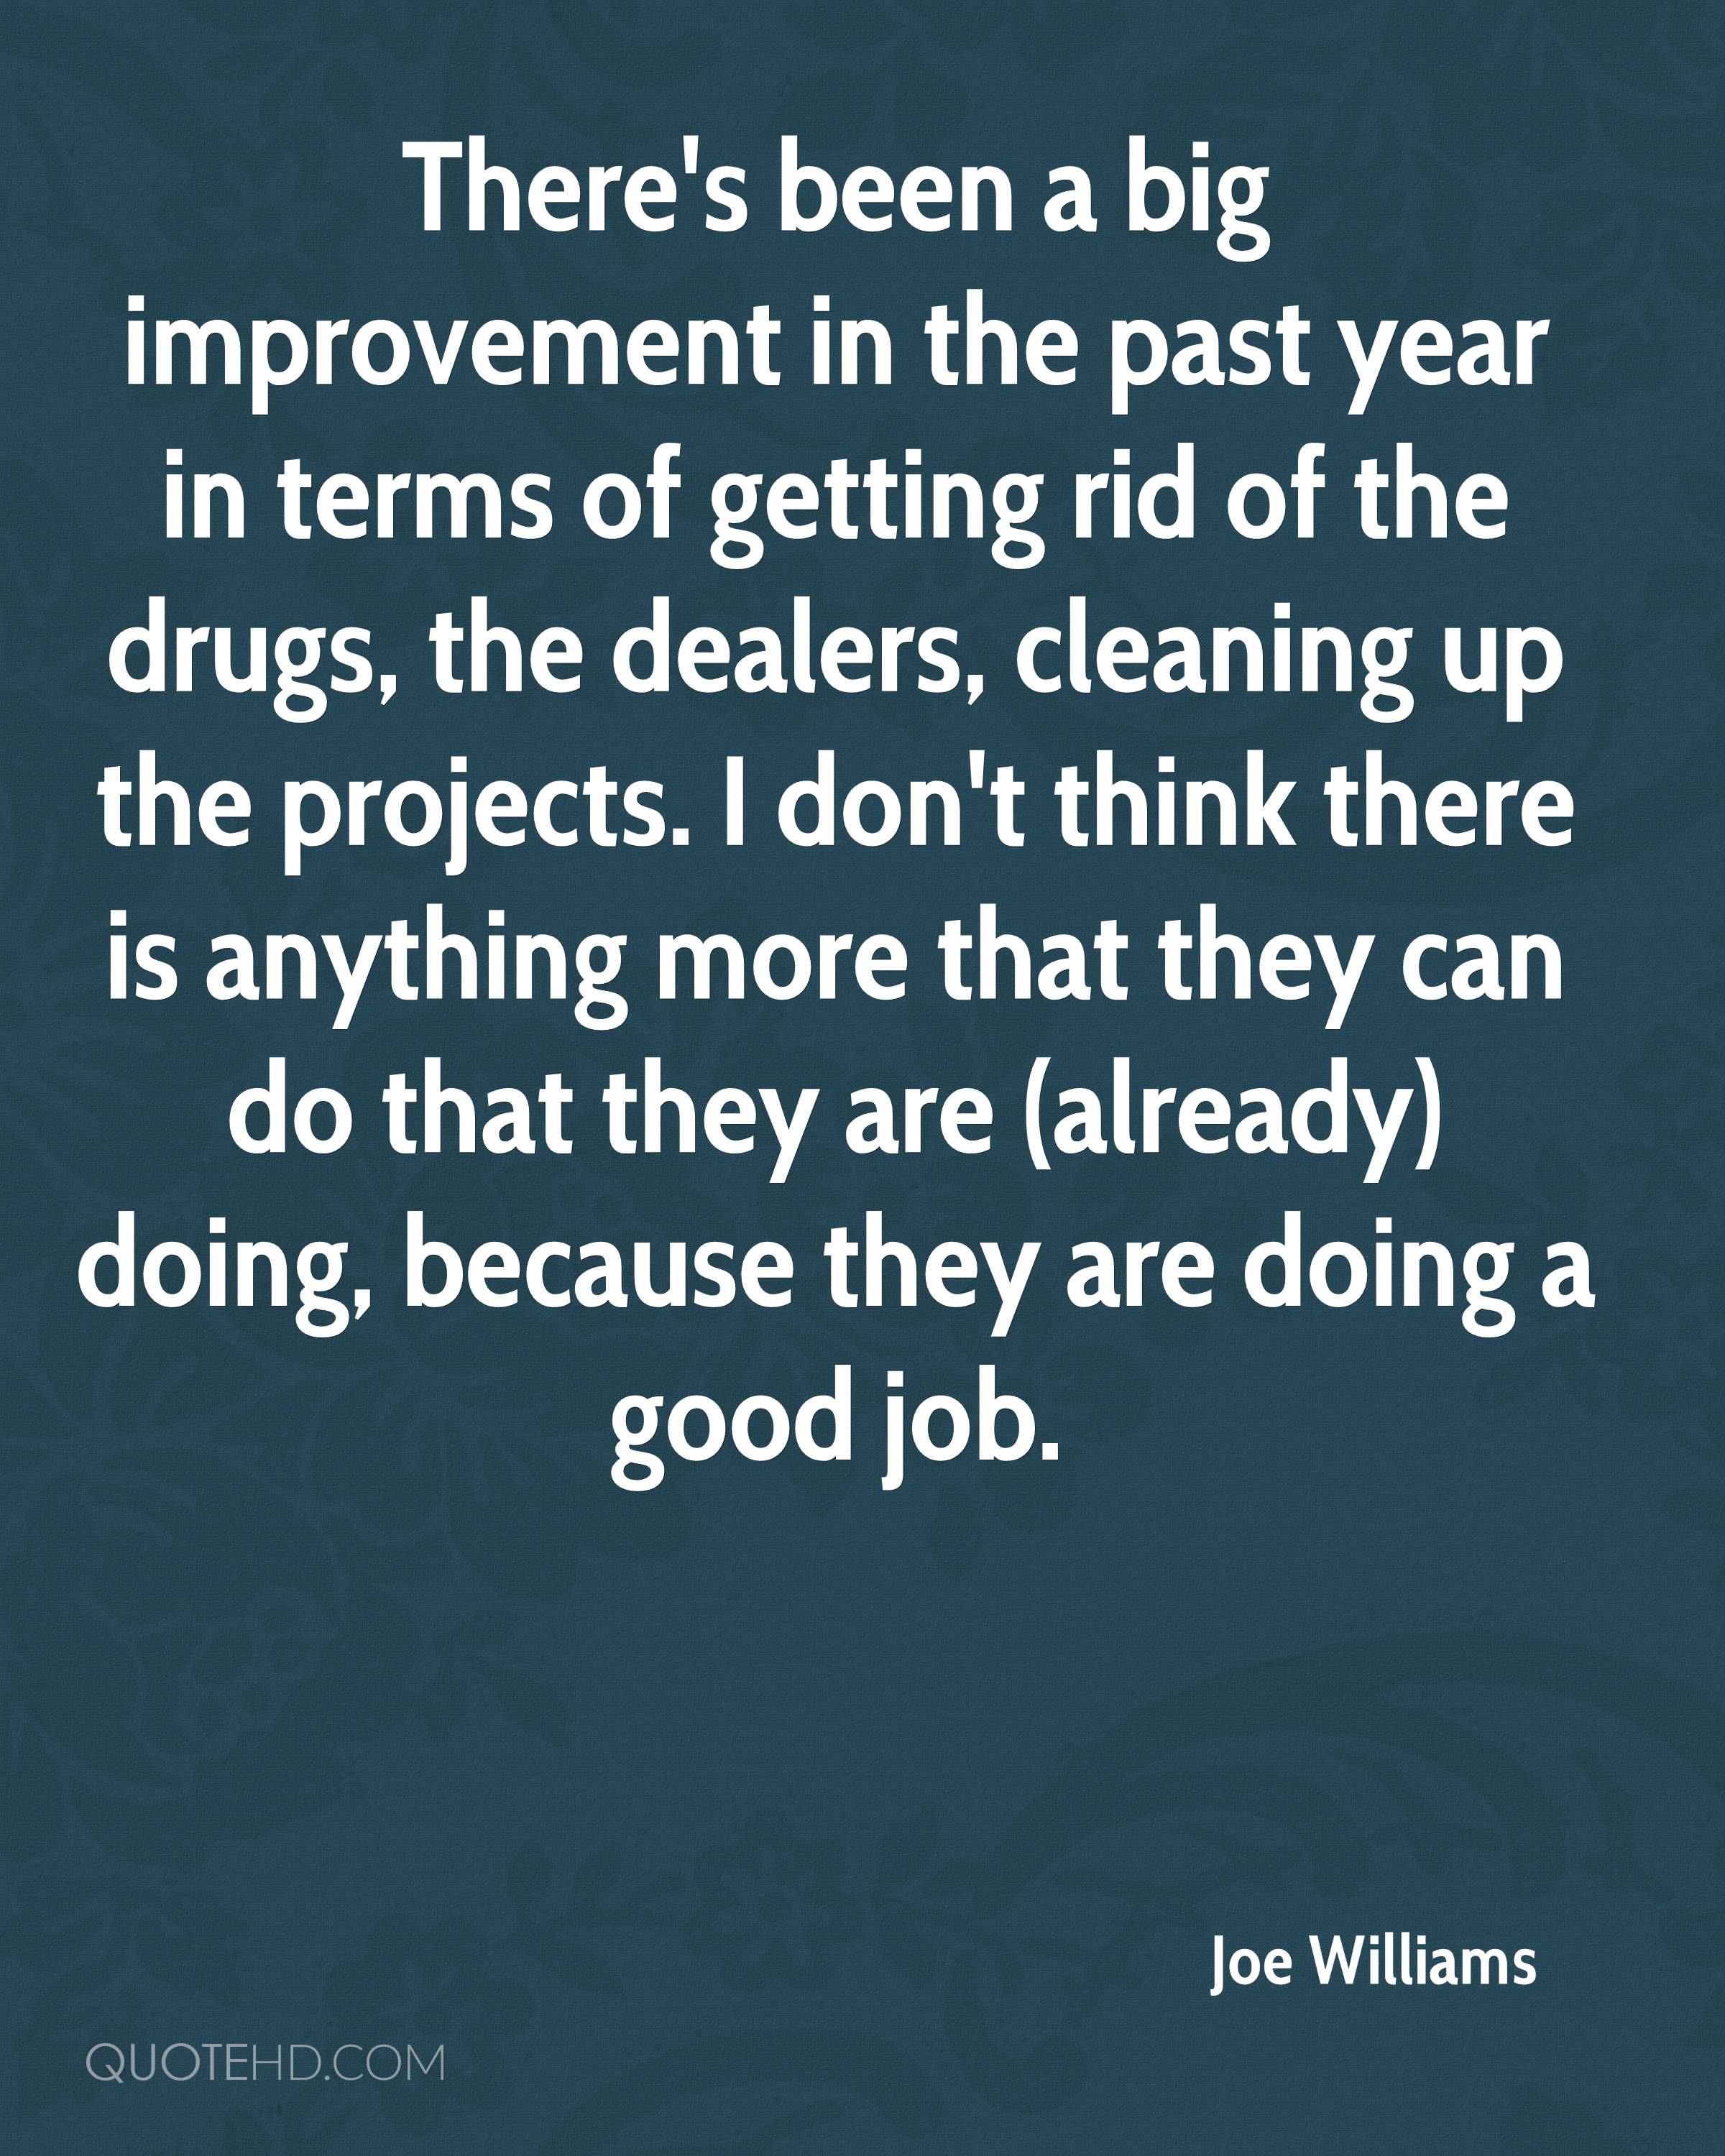 There's been a big improvement in the past year in terms of getting rid of the drugs, the dealers, cleaning up the projects. I don't think there is anything more that they can do that they are (already) doing, because they are doing a good job.